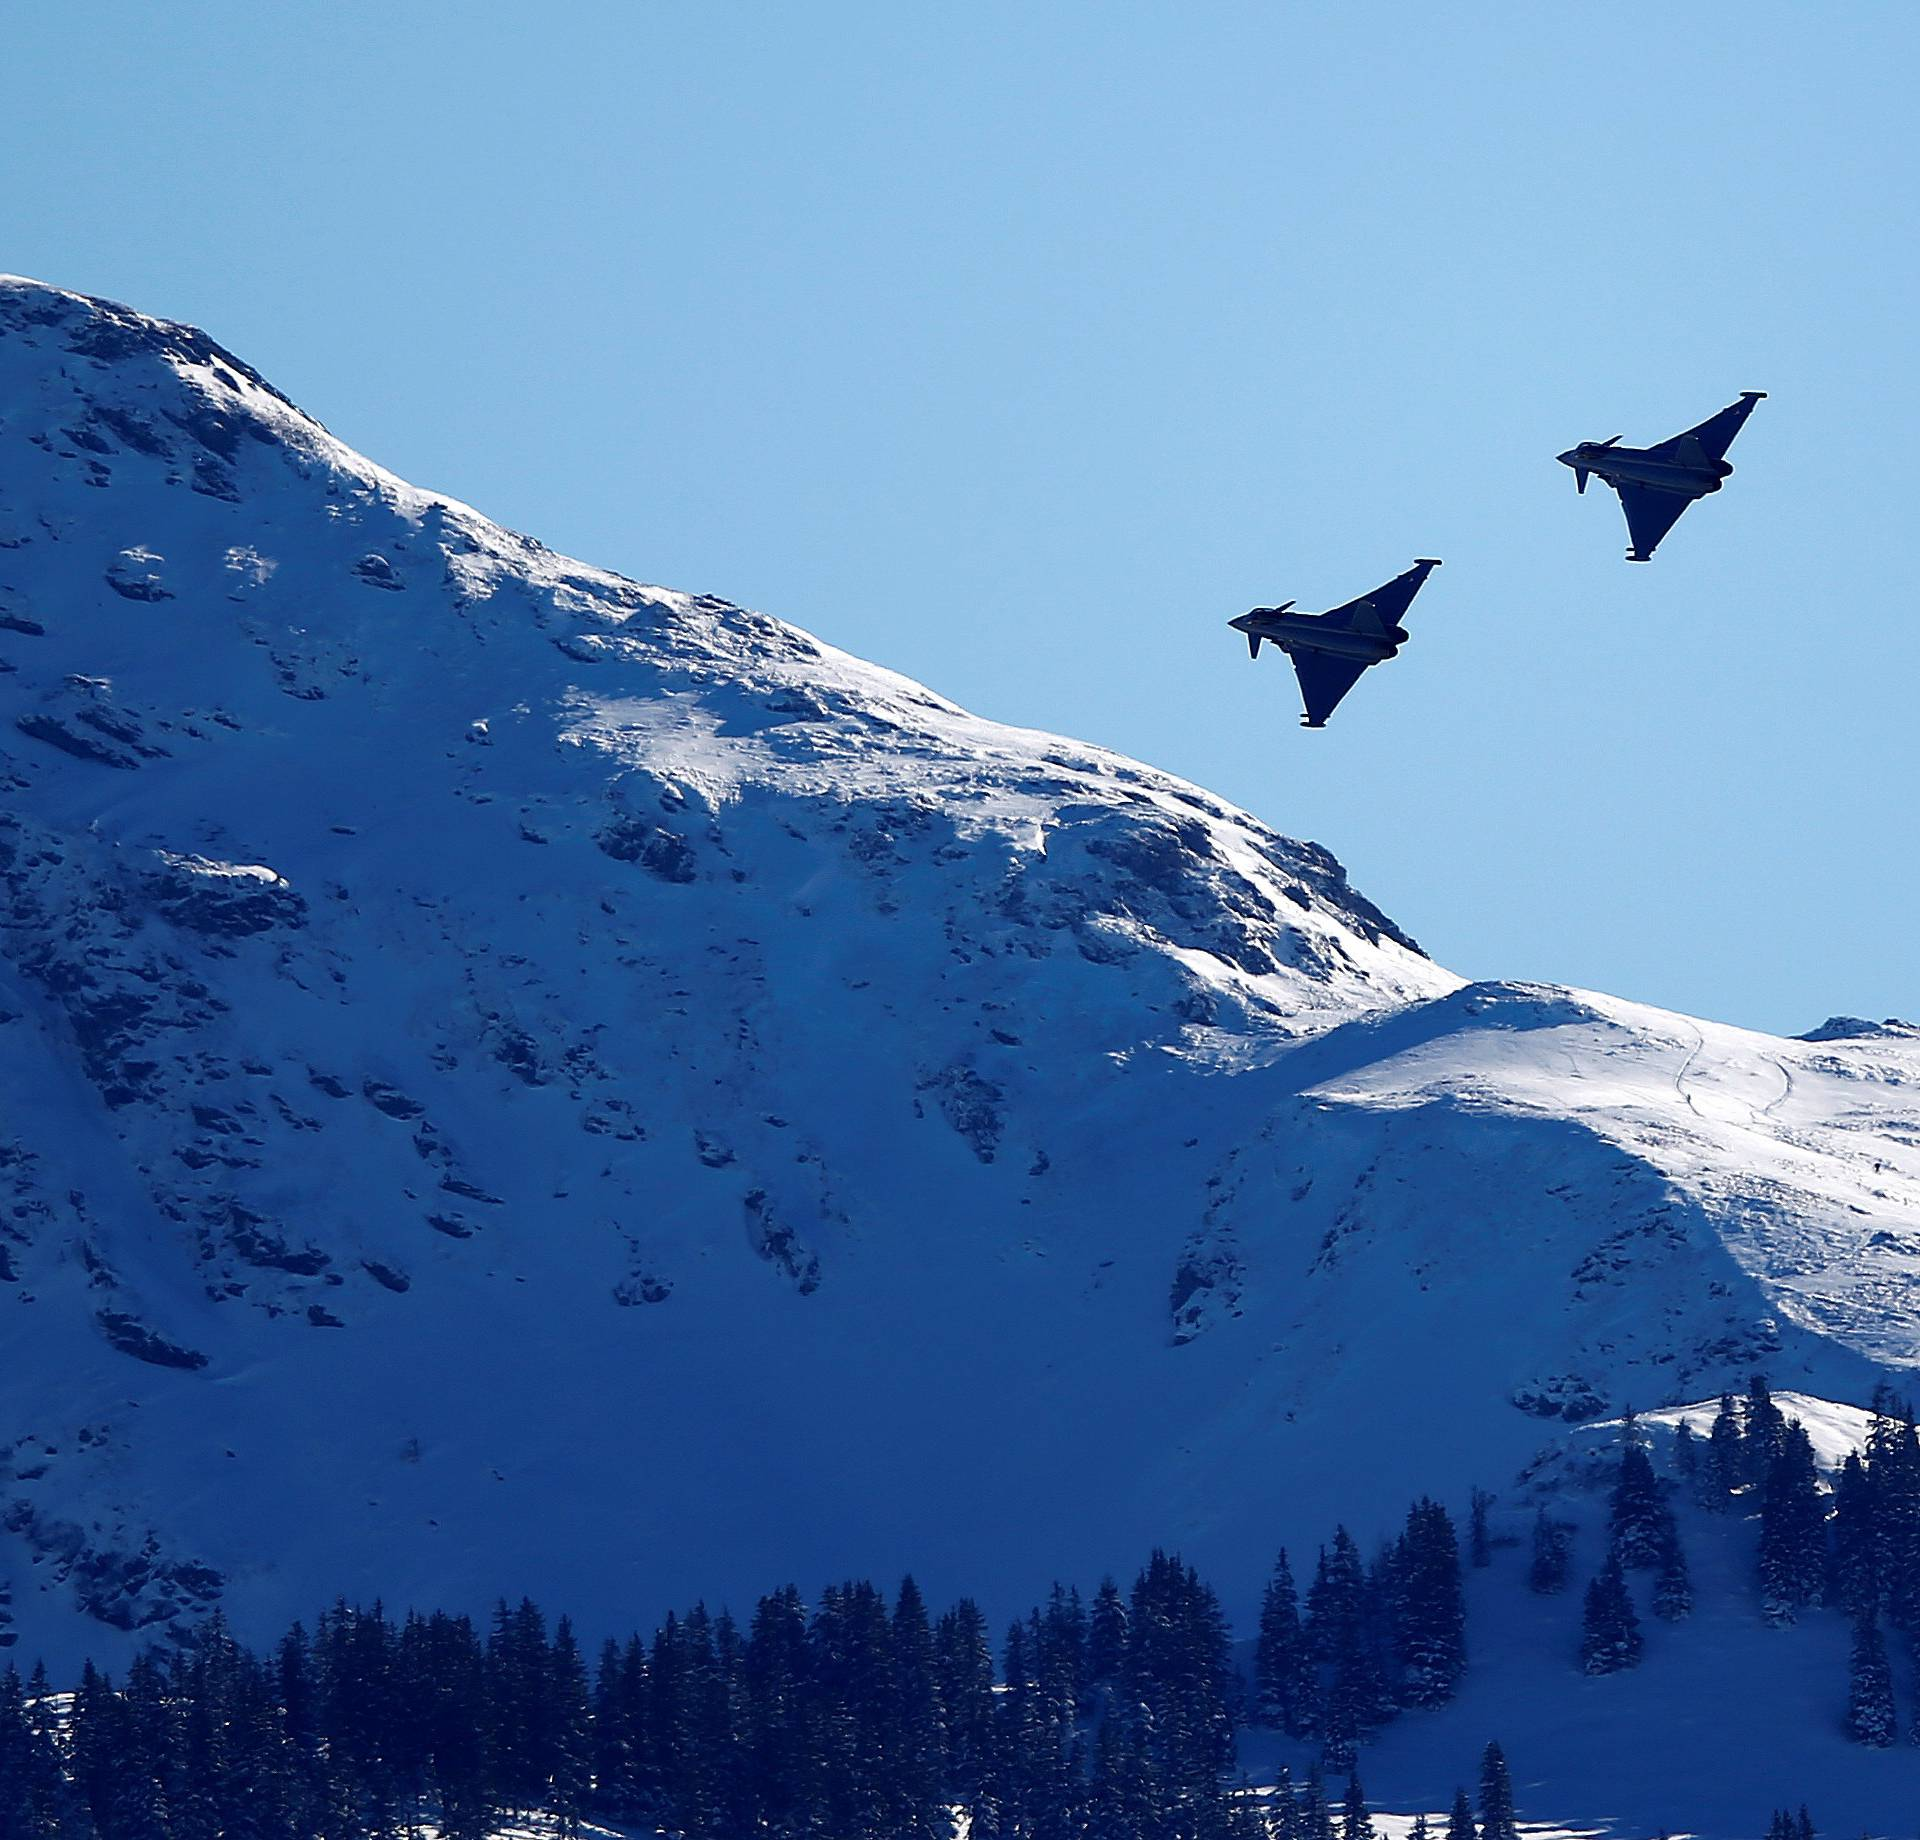 FILE PHOTO: Two Eurofighter Typhoon aircraft fly over the Streif course during an aerial exhibition before the start of the men's Alpine Skiing World Cup Super G race in Kitzbuehel